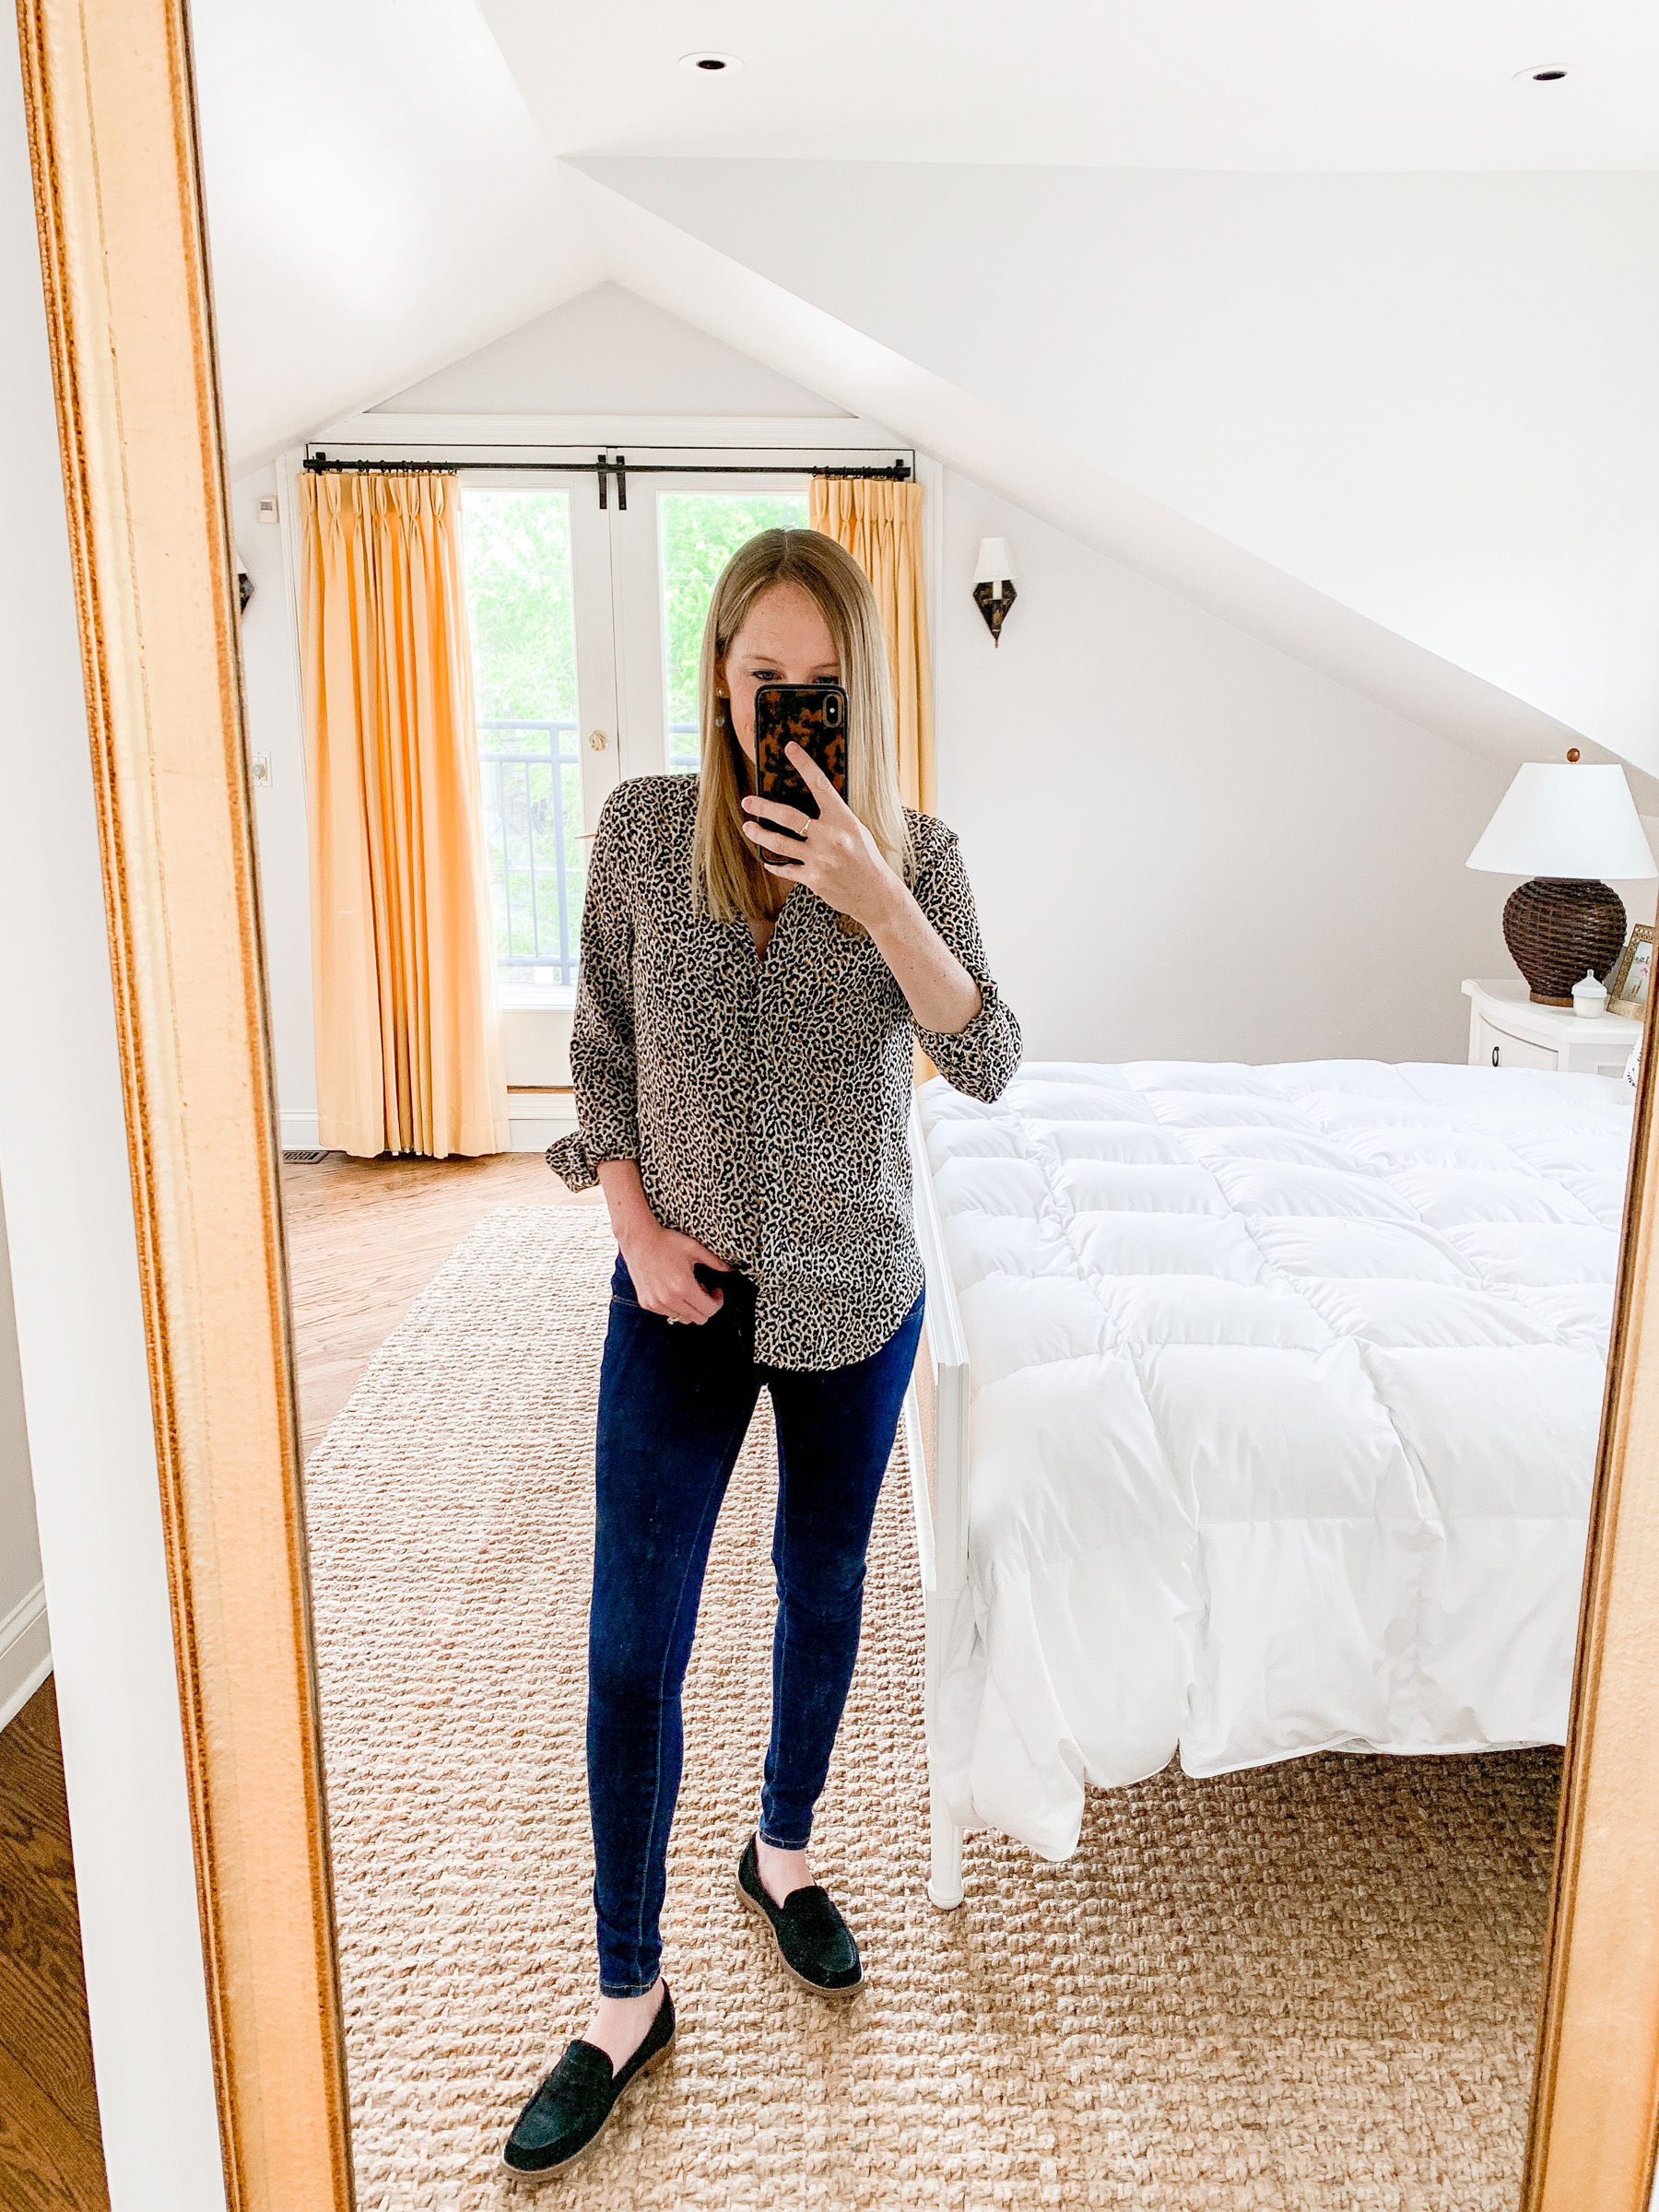 Kelly's outfit: Old Navy Rockstar Jeans and Leopard button-down shirt